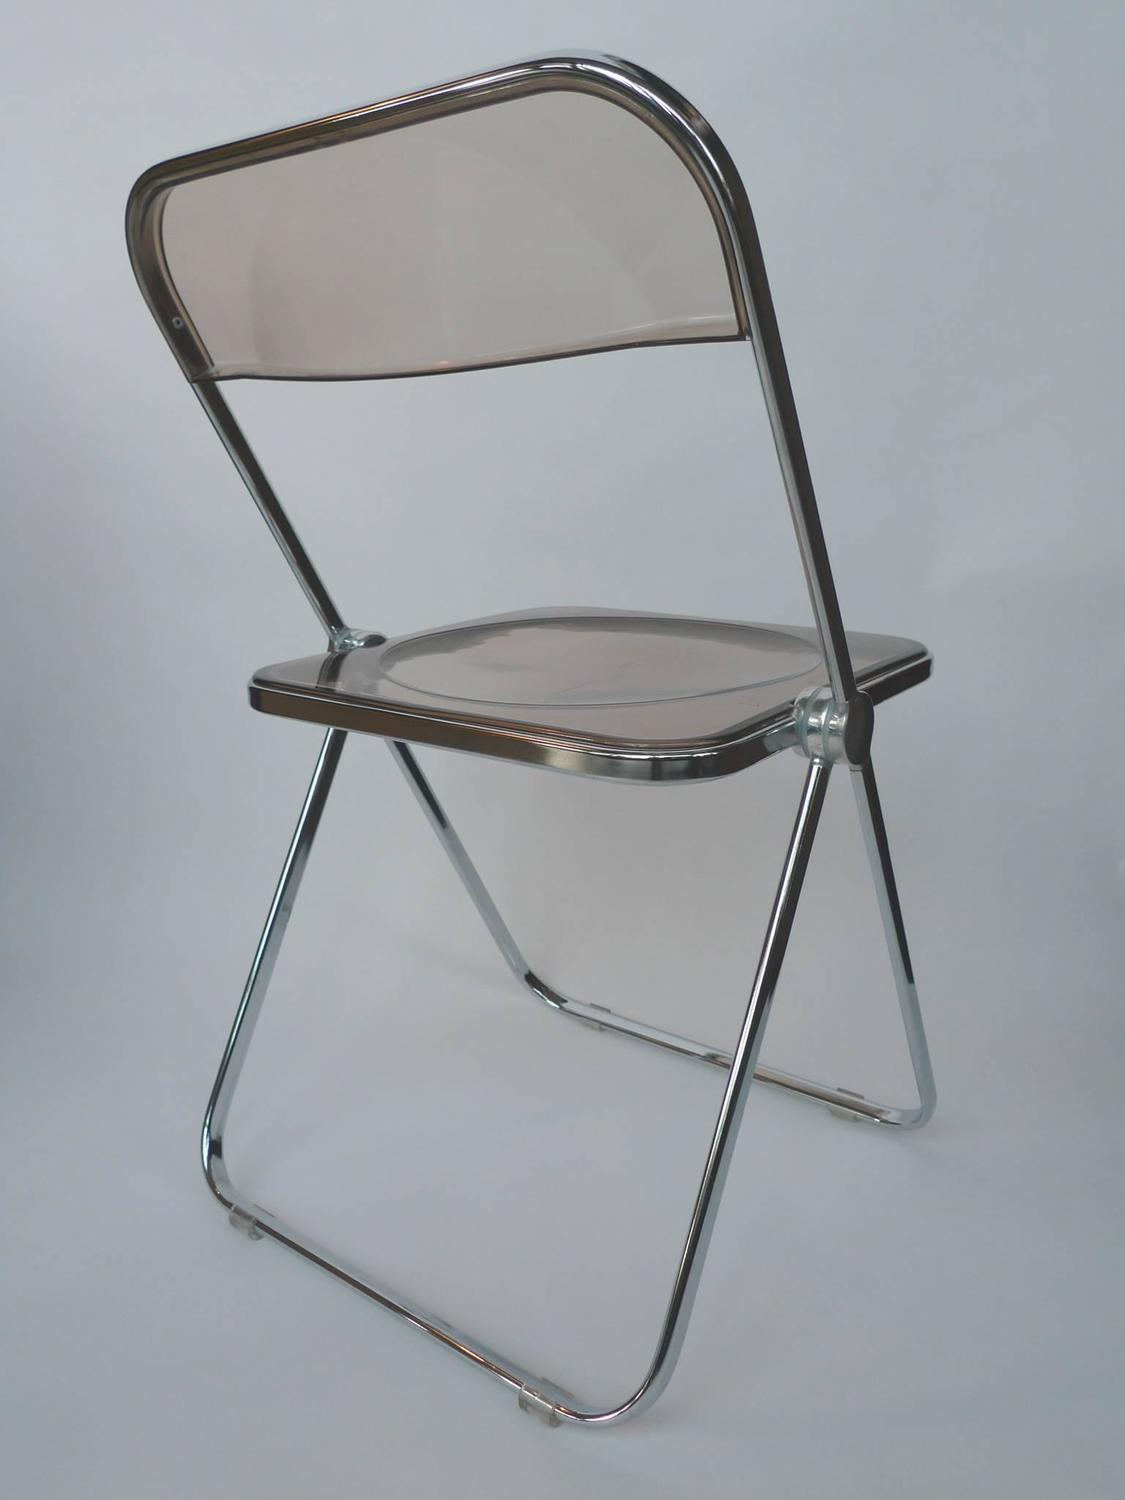 1960s Plia Lucite And Chrome Folding Chairs By Giancarlo Piretti   A Set Of  6 At 1stdibs